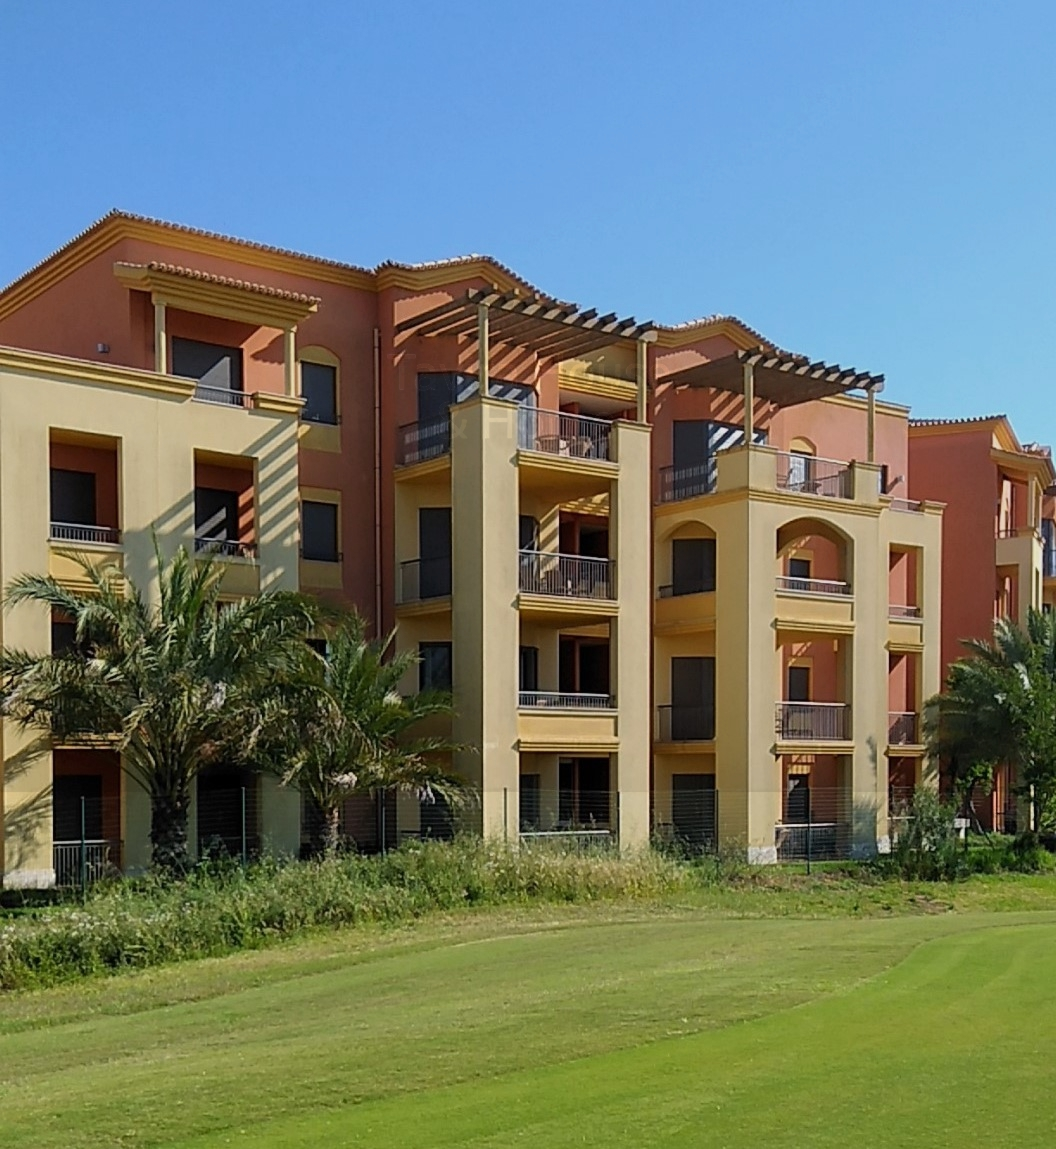 A0592 - 2 Bedroom Apartment with View of Golf Course  Vilamoura  Portugal